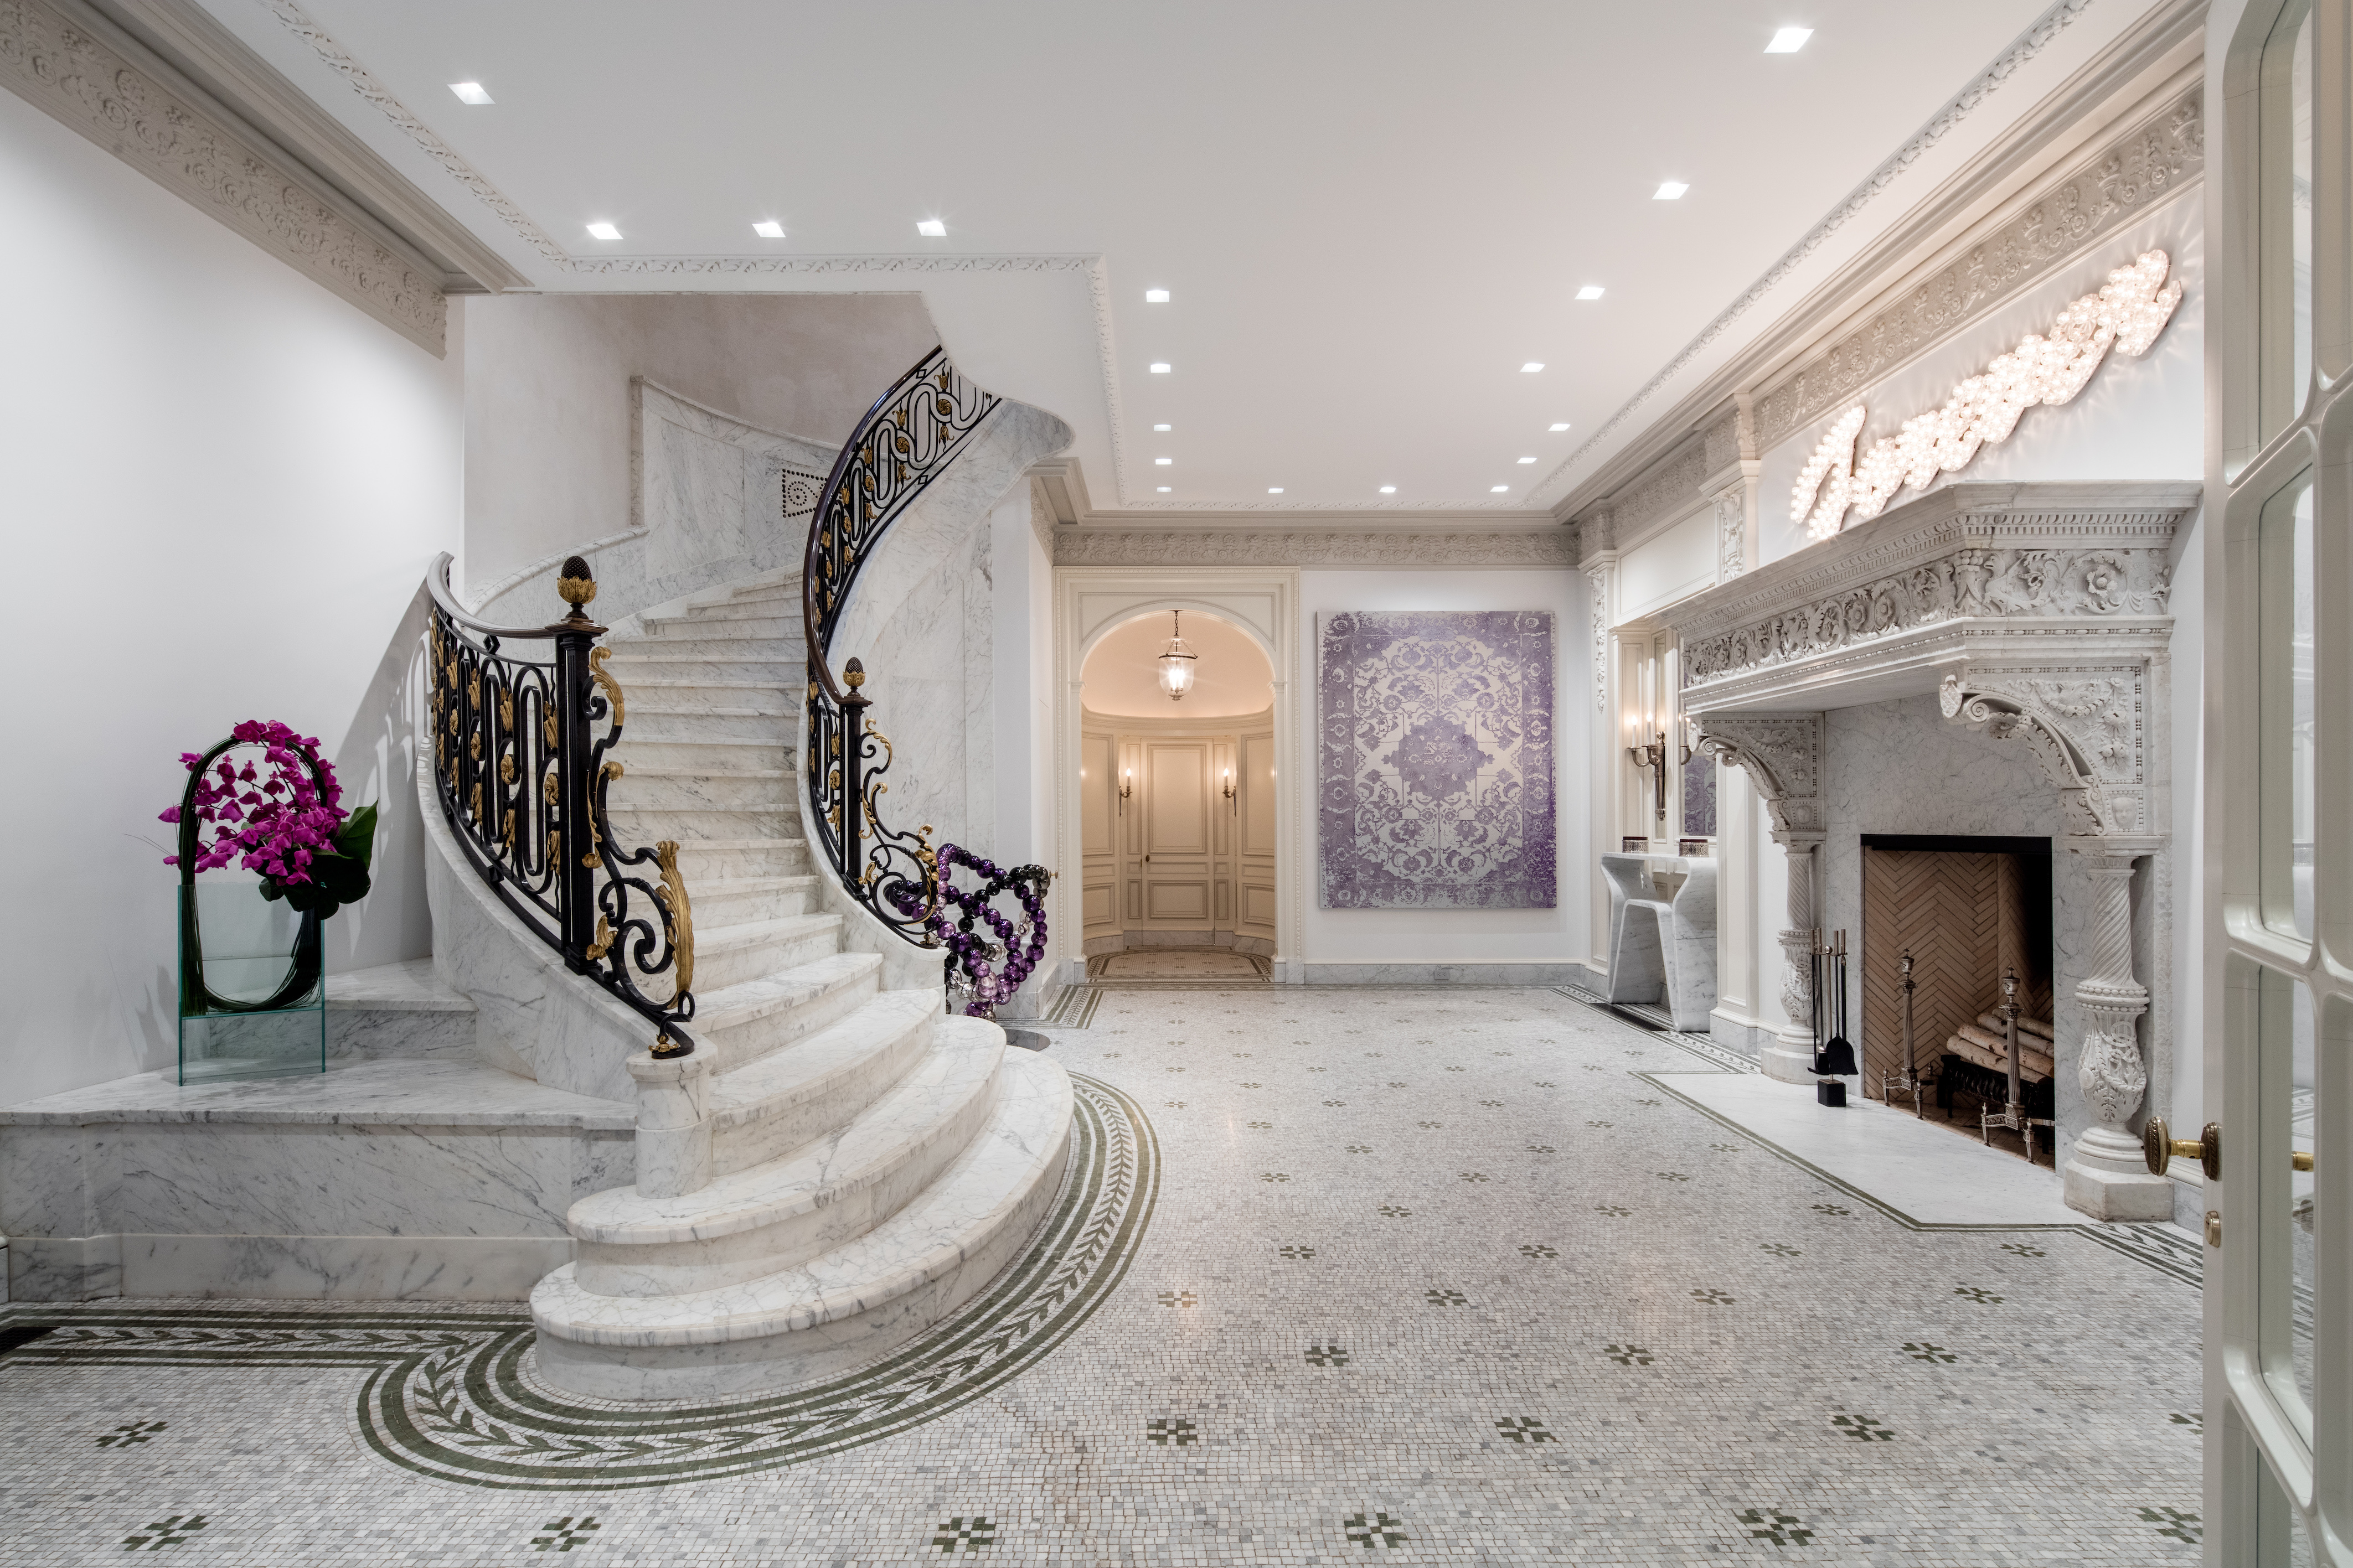 8 East 62nd Street Interior Photo